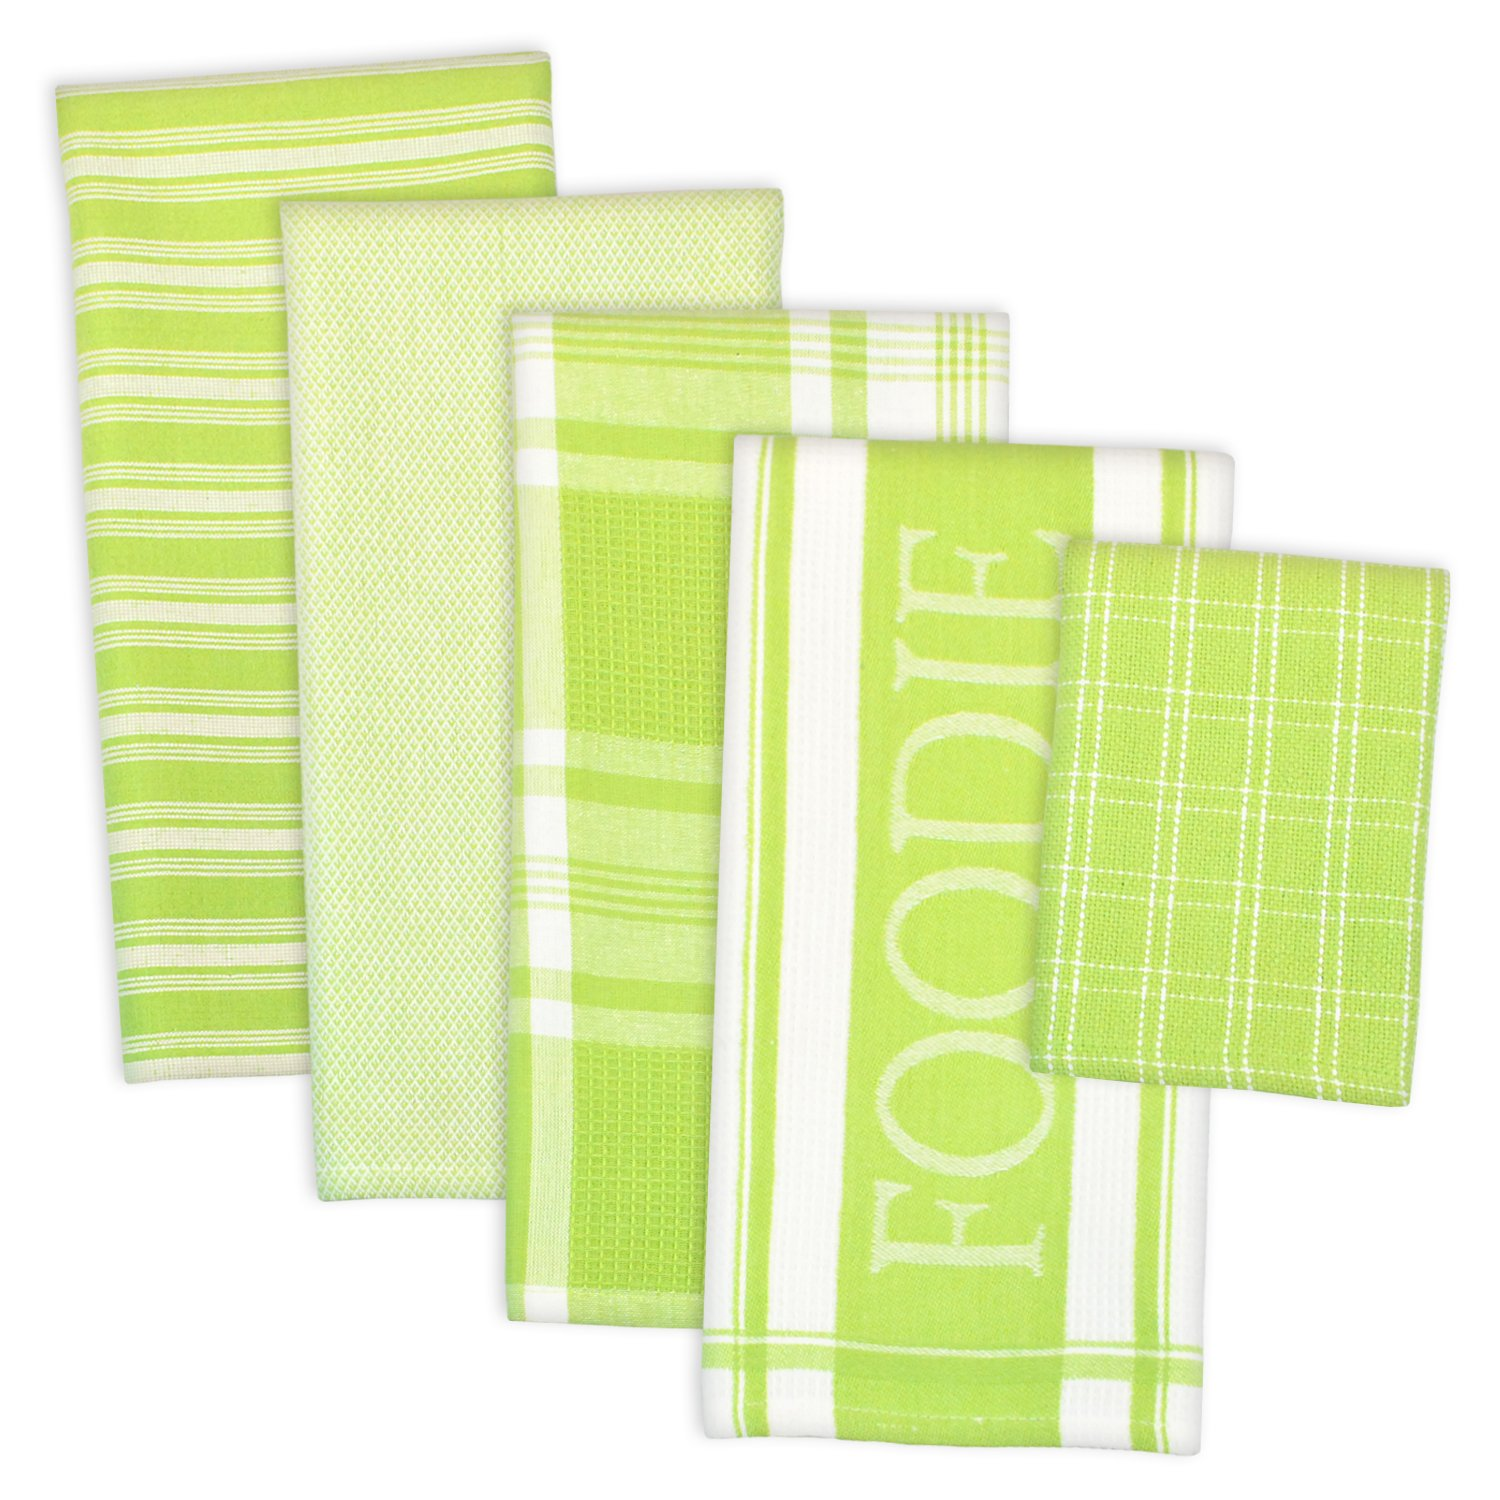 "DII Assorted Decorative Kitchen Dish Towels & Dish Cloth Foodie Set, Ultra Absorbent for Washing and Drying (Towels 18x28"" & Cloths 13x13"") Lime Green, Set of 5"